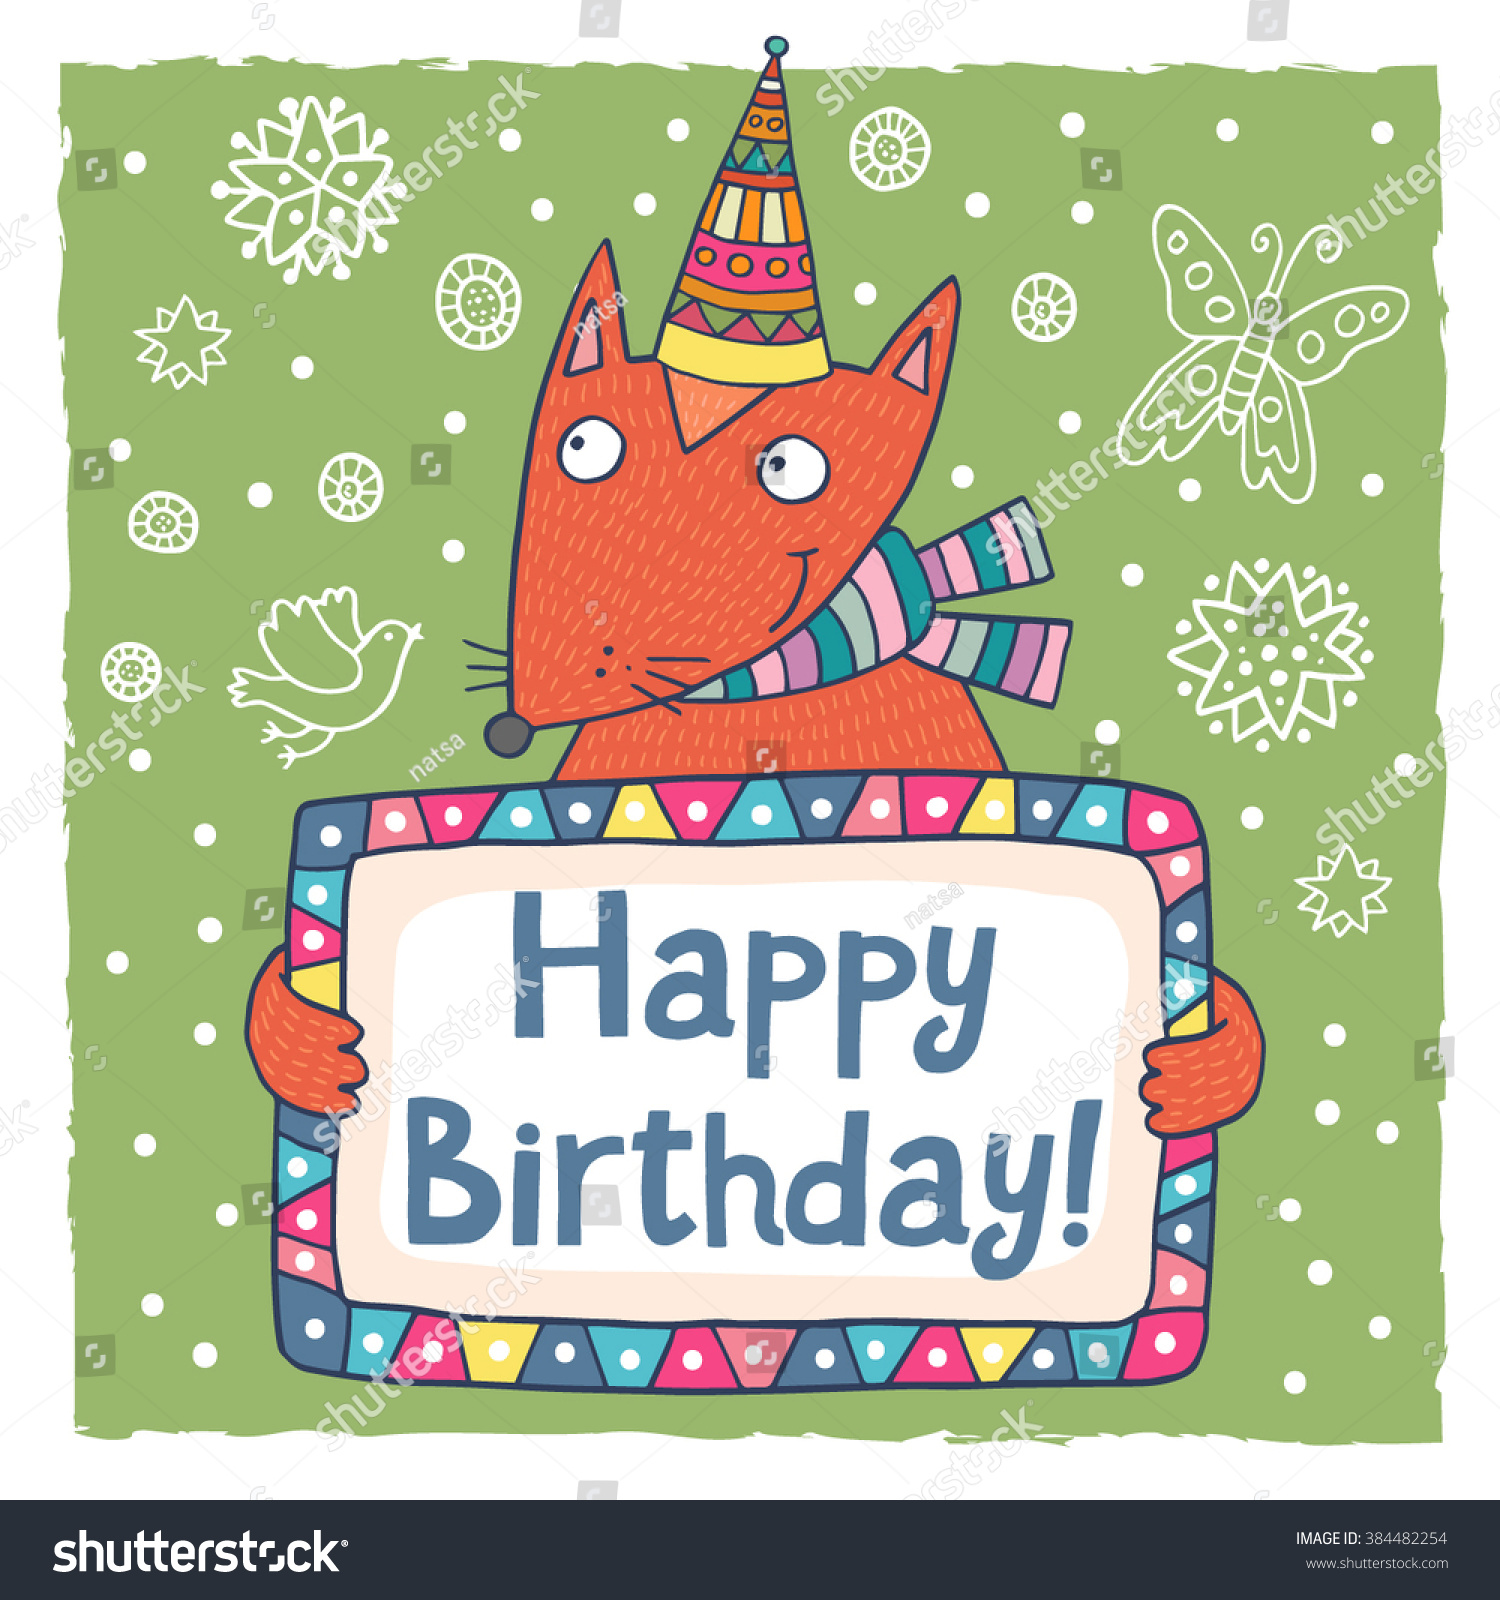 Cute Happy Birthday Greeting Card Template Stock Vector